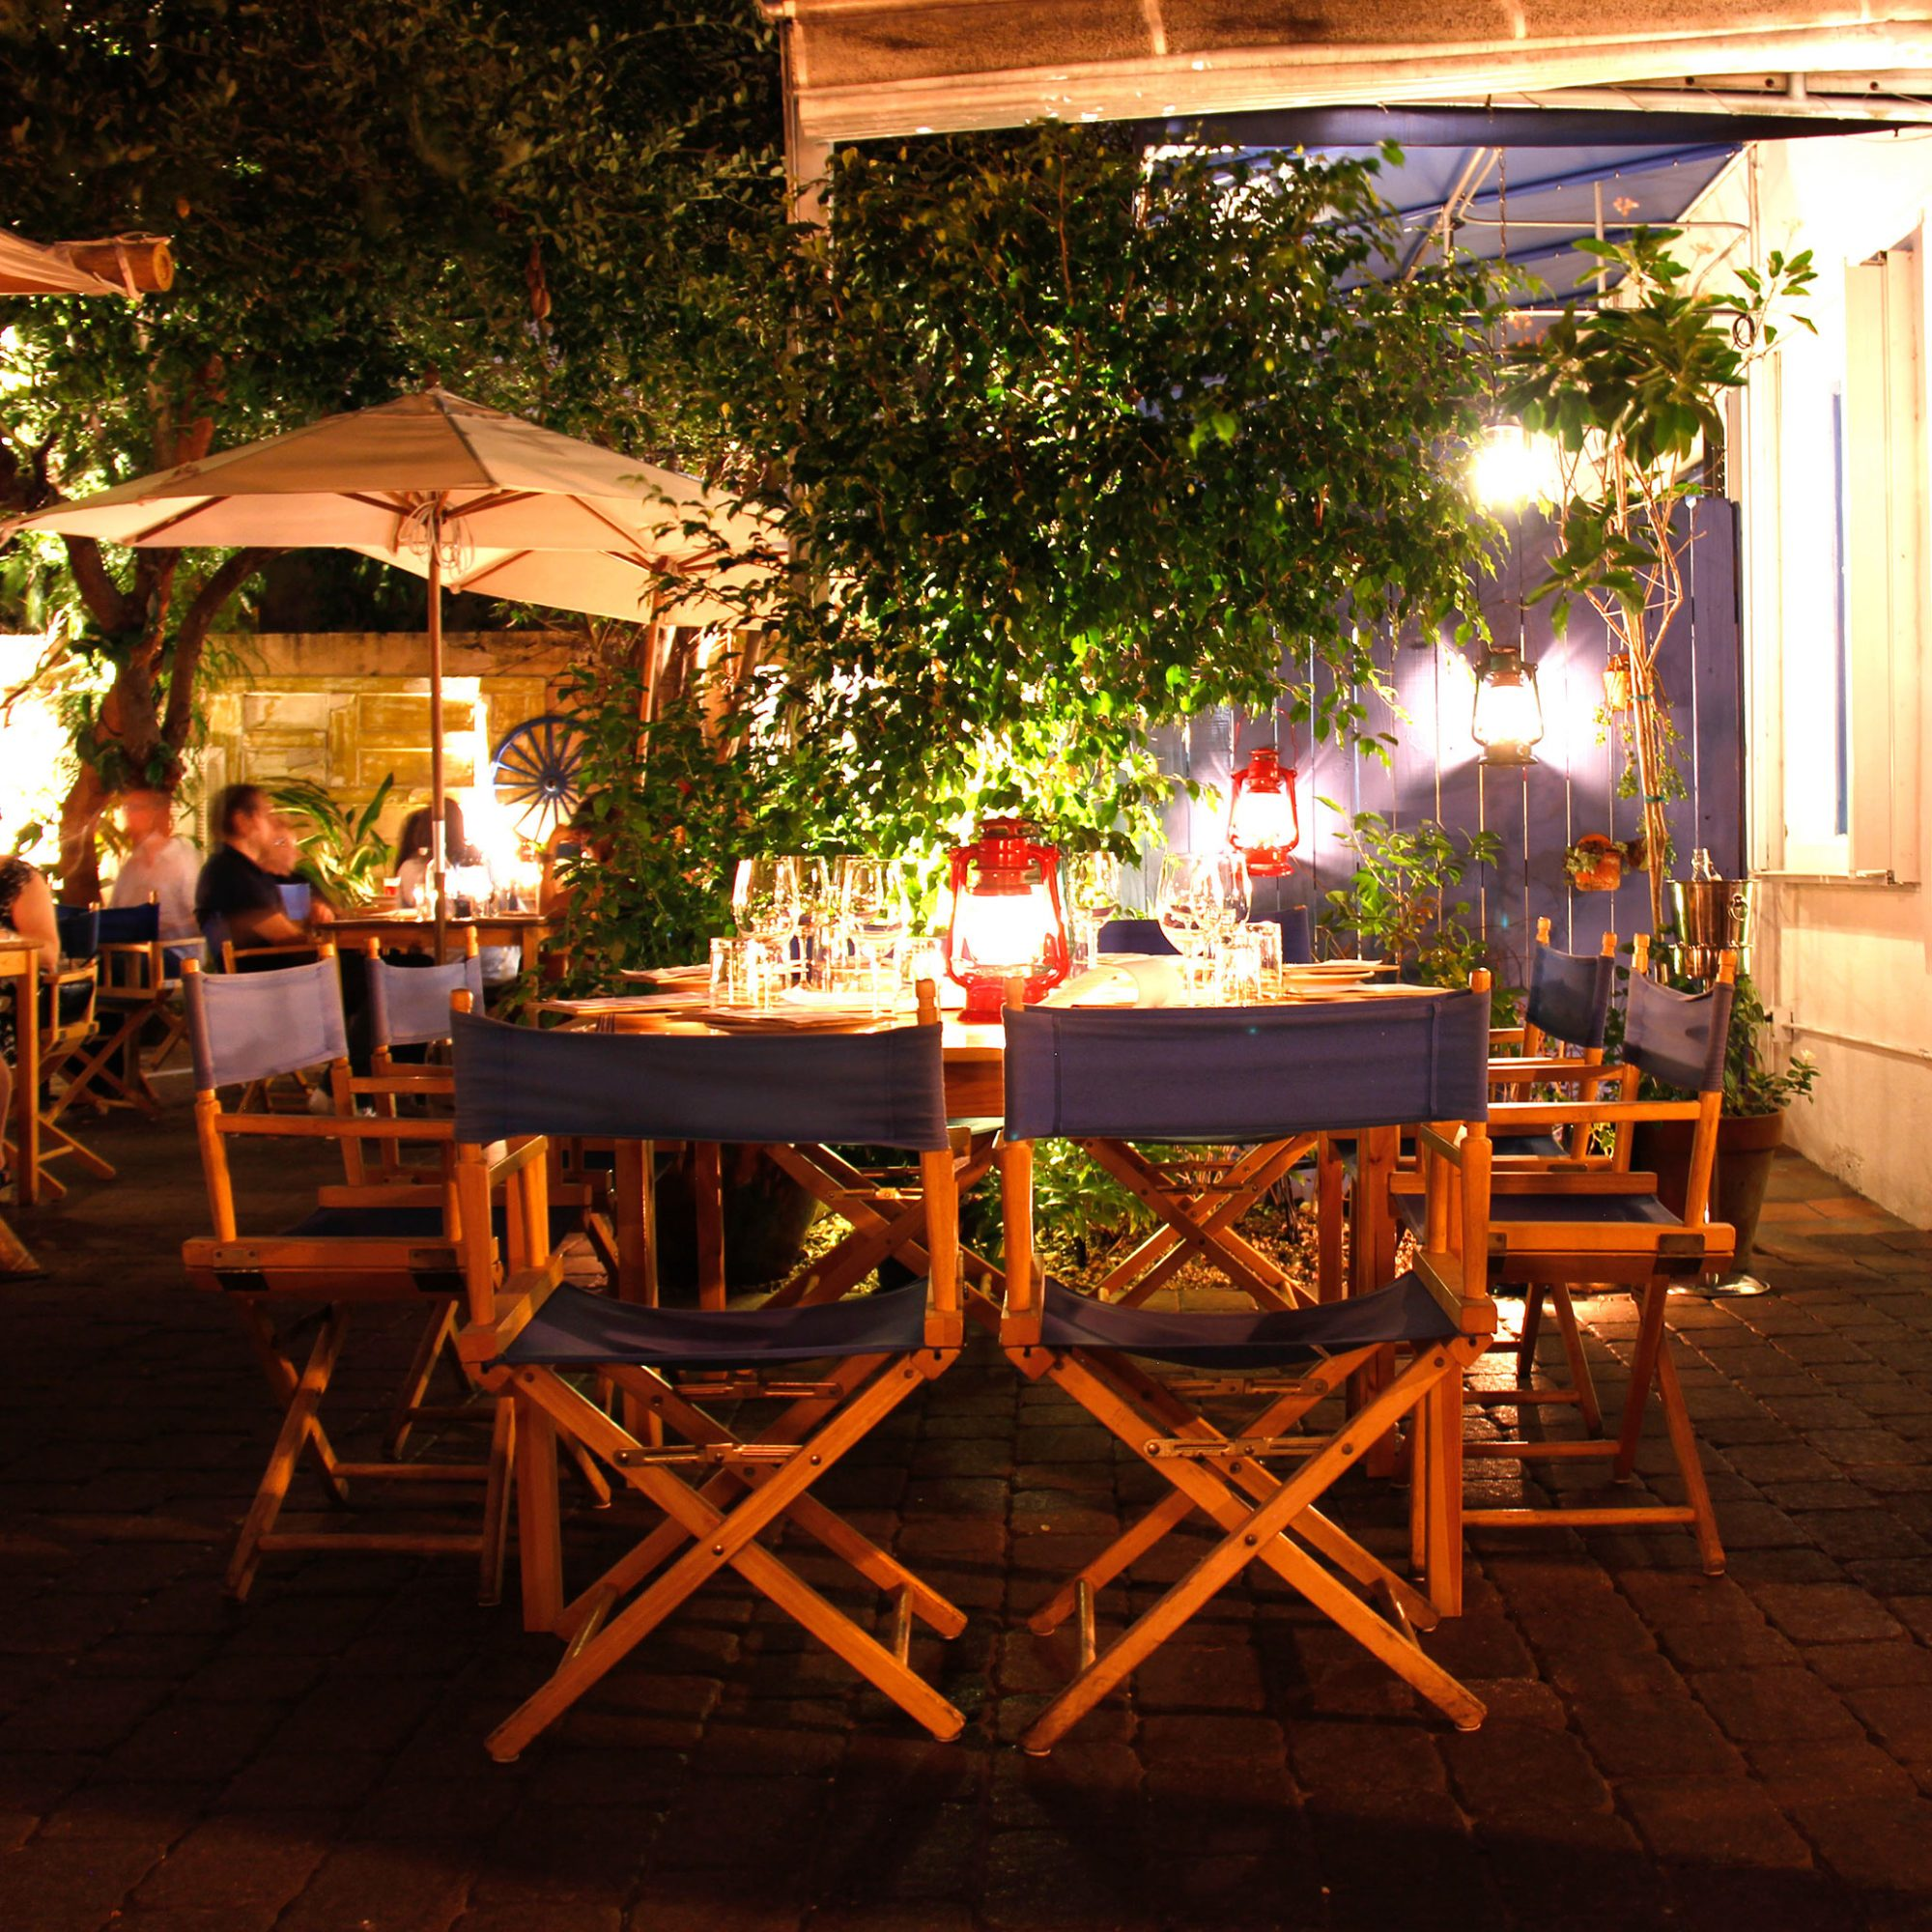 The Courtyard at Mandolin Aegean Bistro